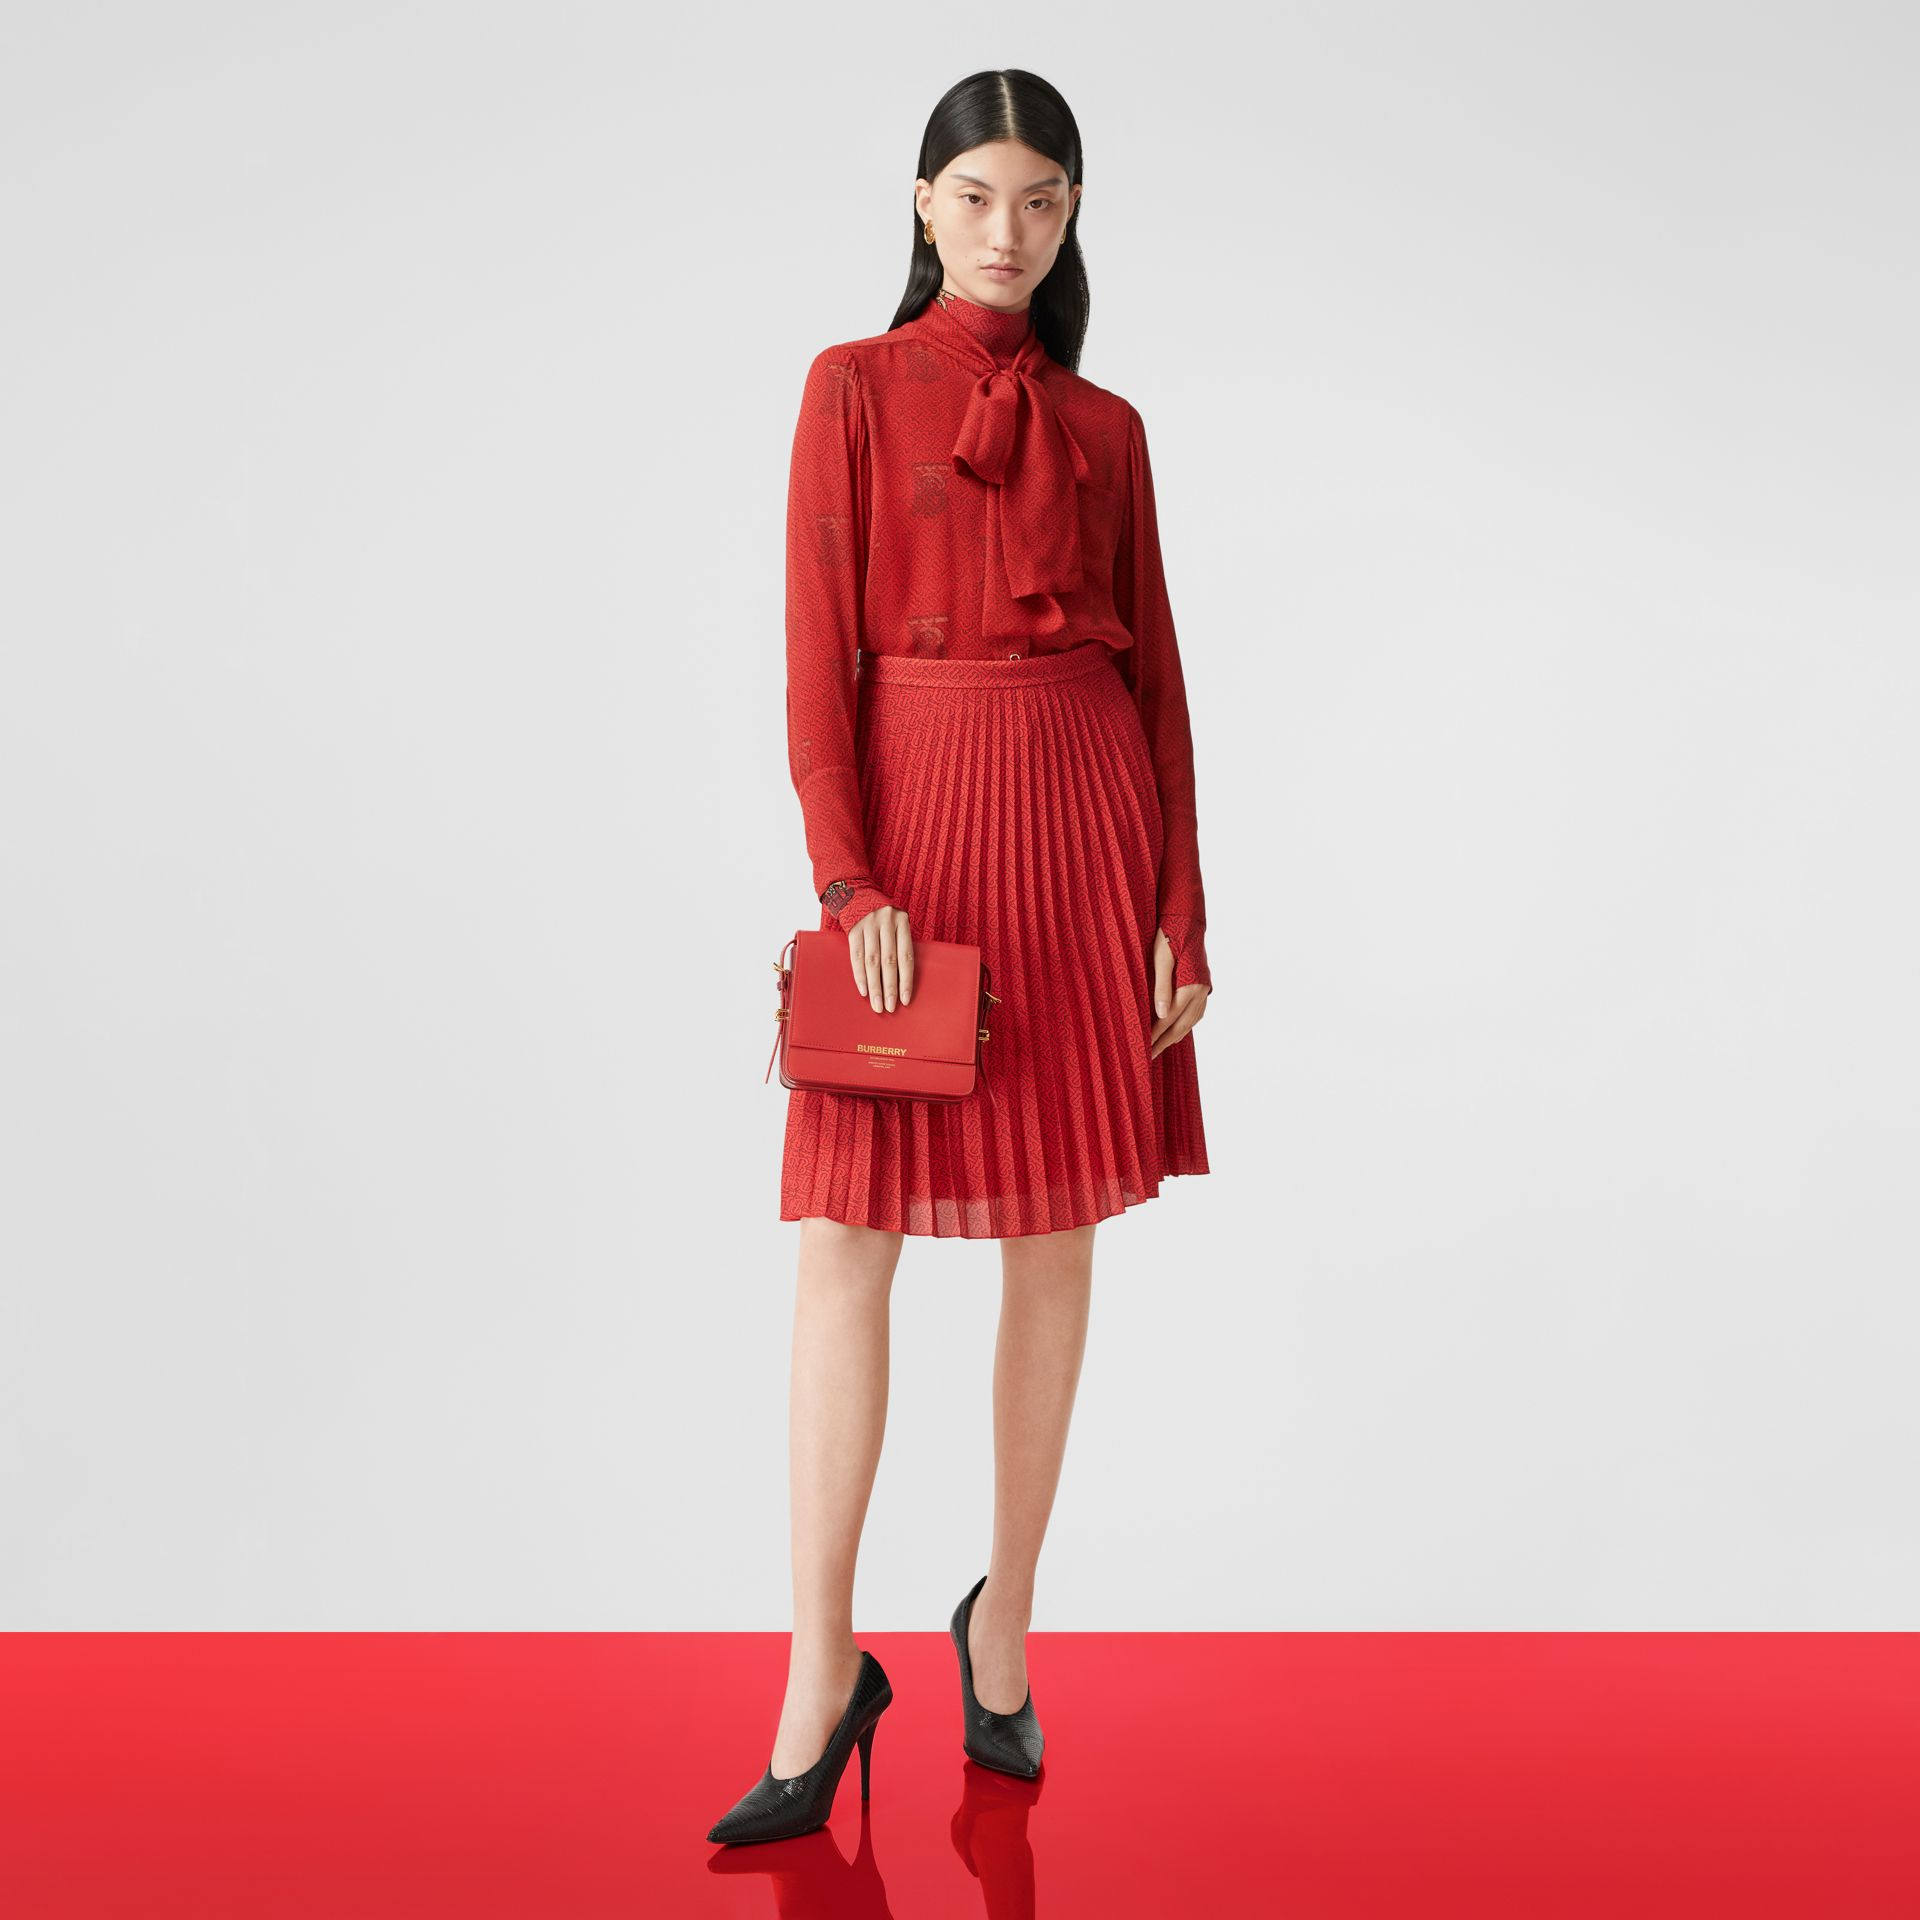 Monogram Print Silk Chiffon Pussy-bow Blouse in Bright Red - Women | Burberry Hong Kong S.A.R - gallery image 6